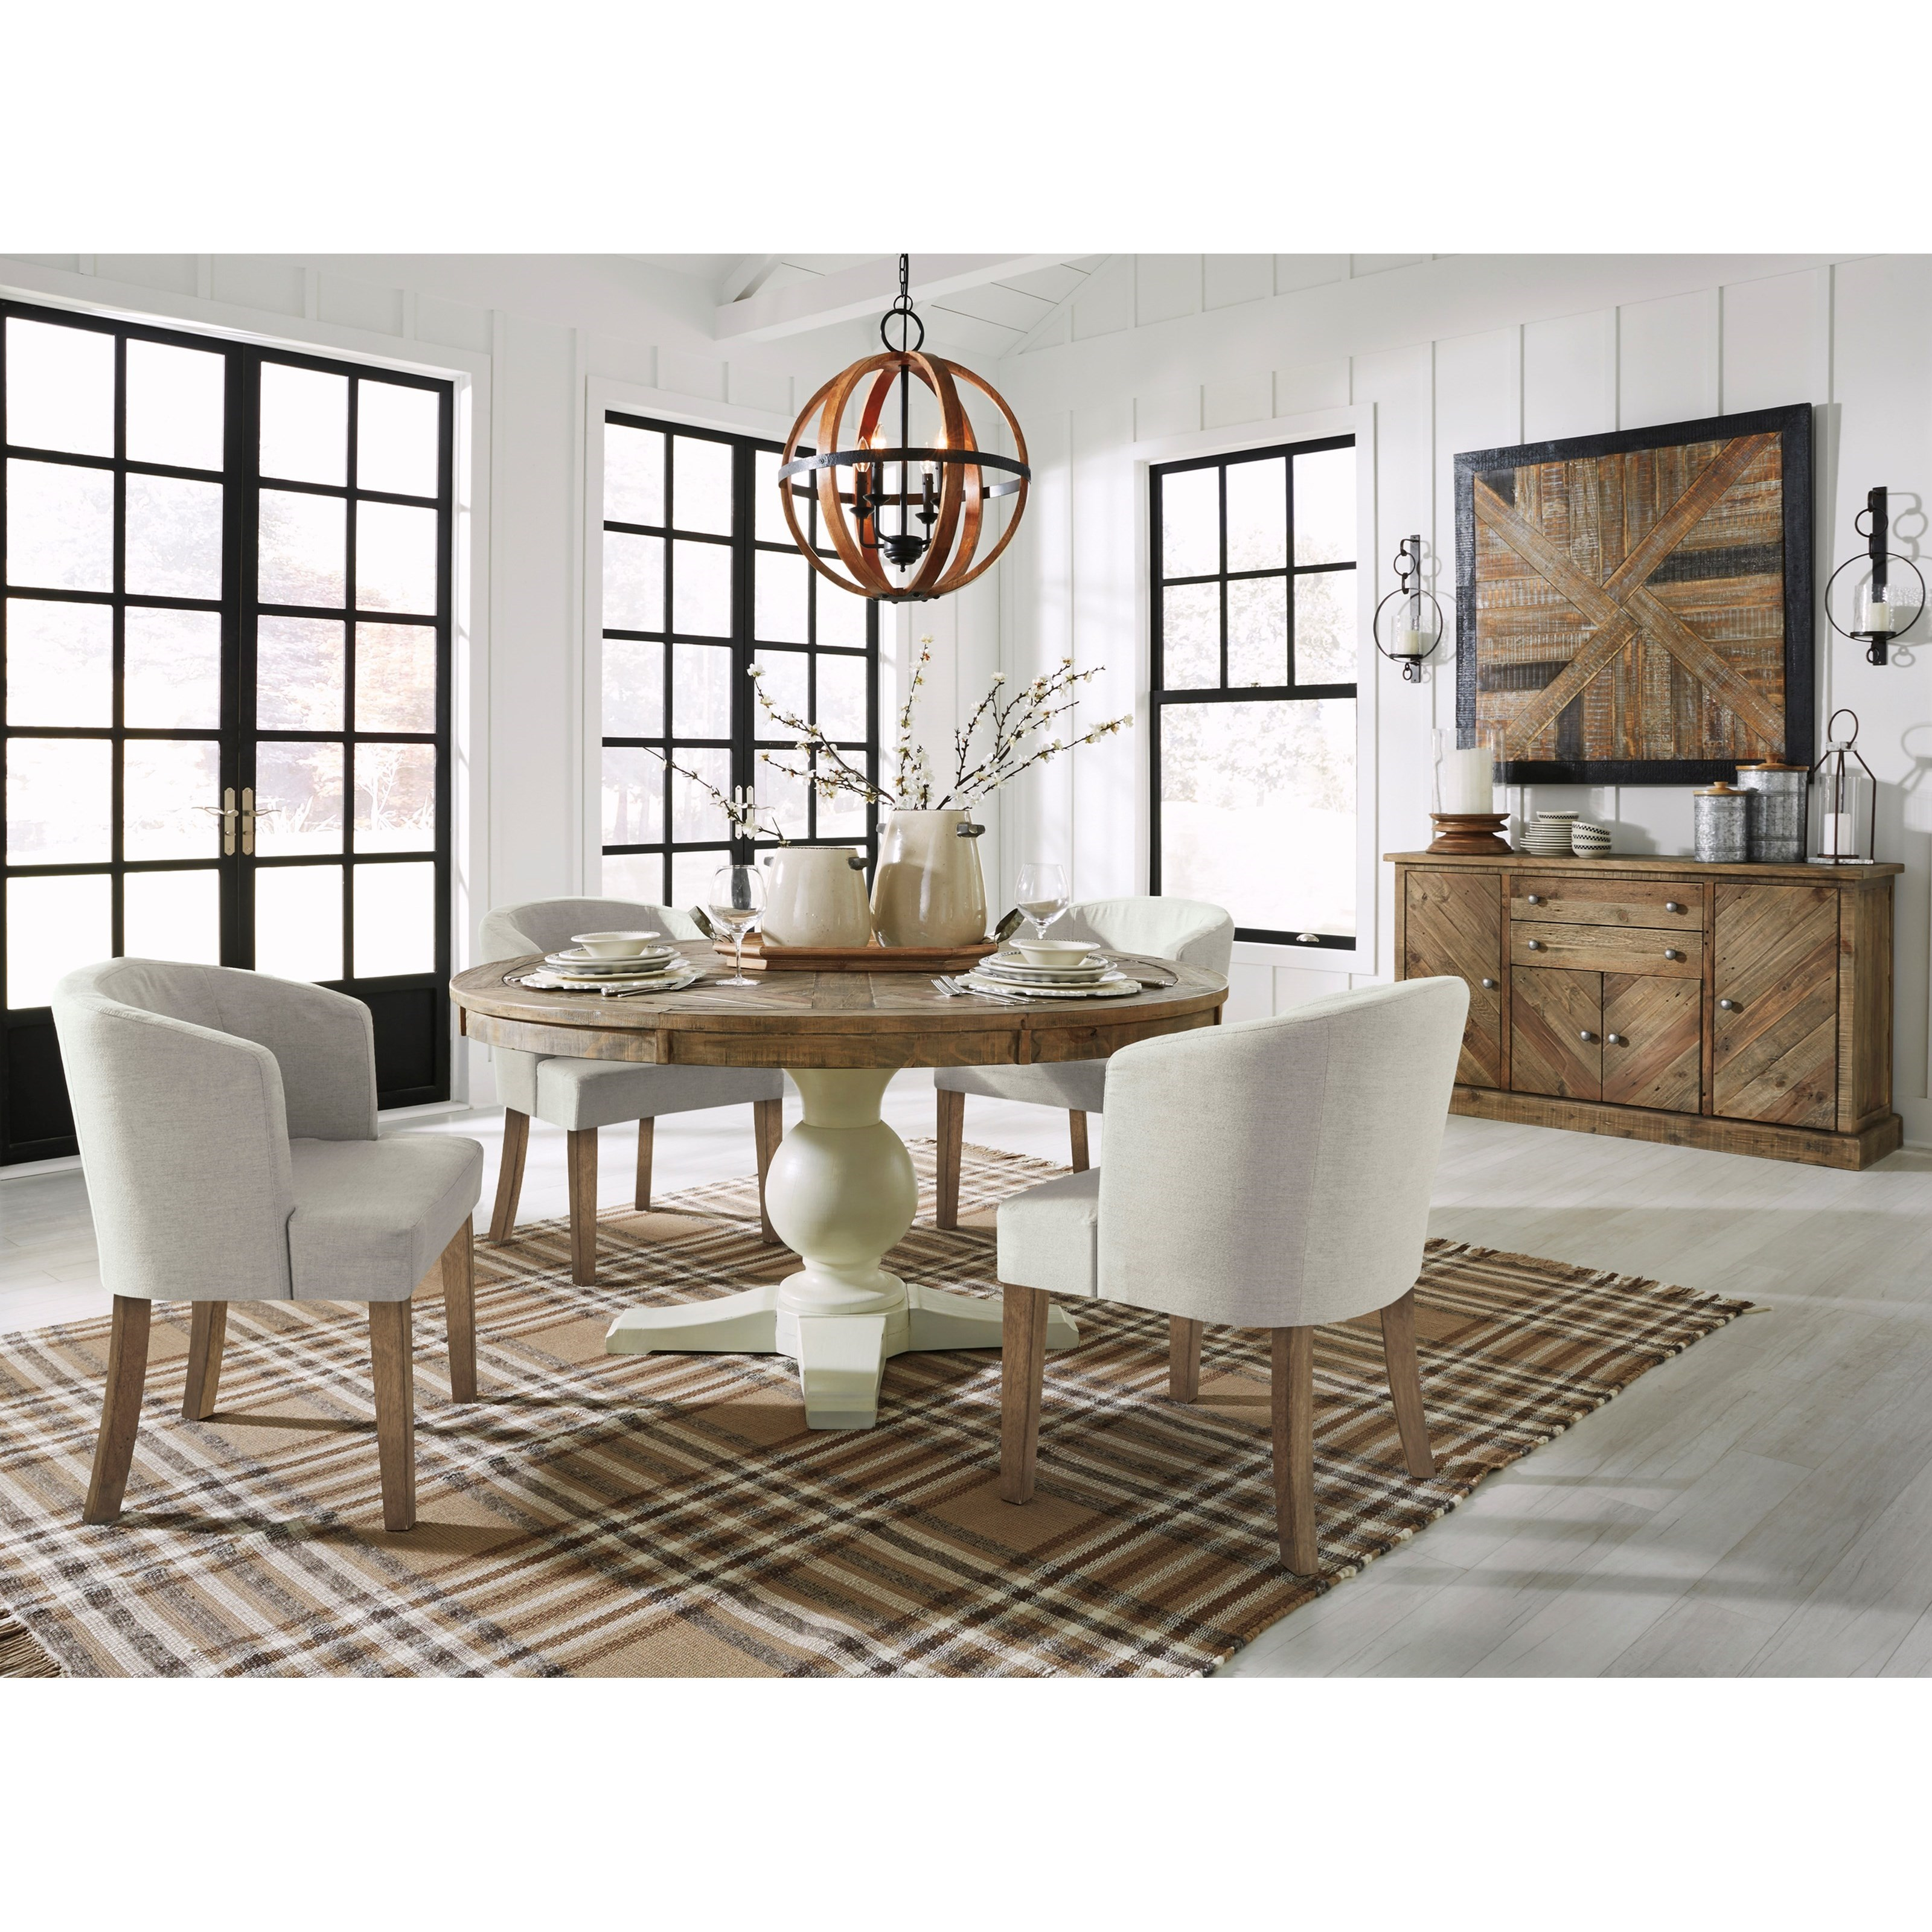 Grindleburg Formal Dining Room Group by Signature Design by Ashley at Lapeer Furniture & Mattress Center